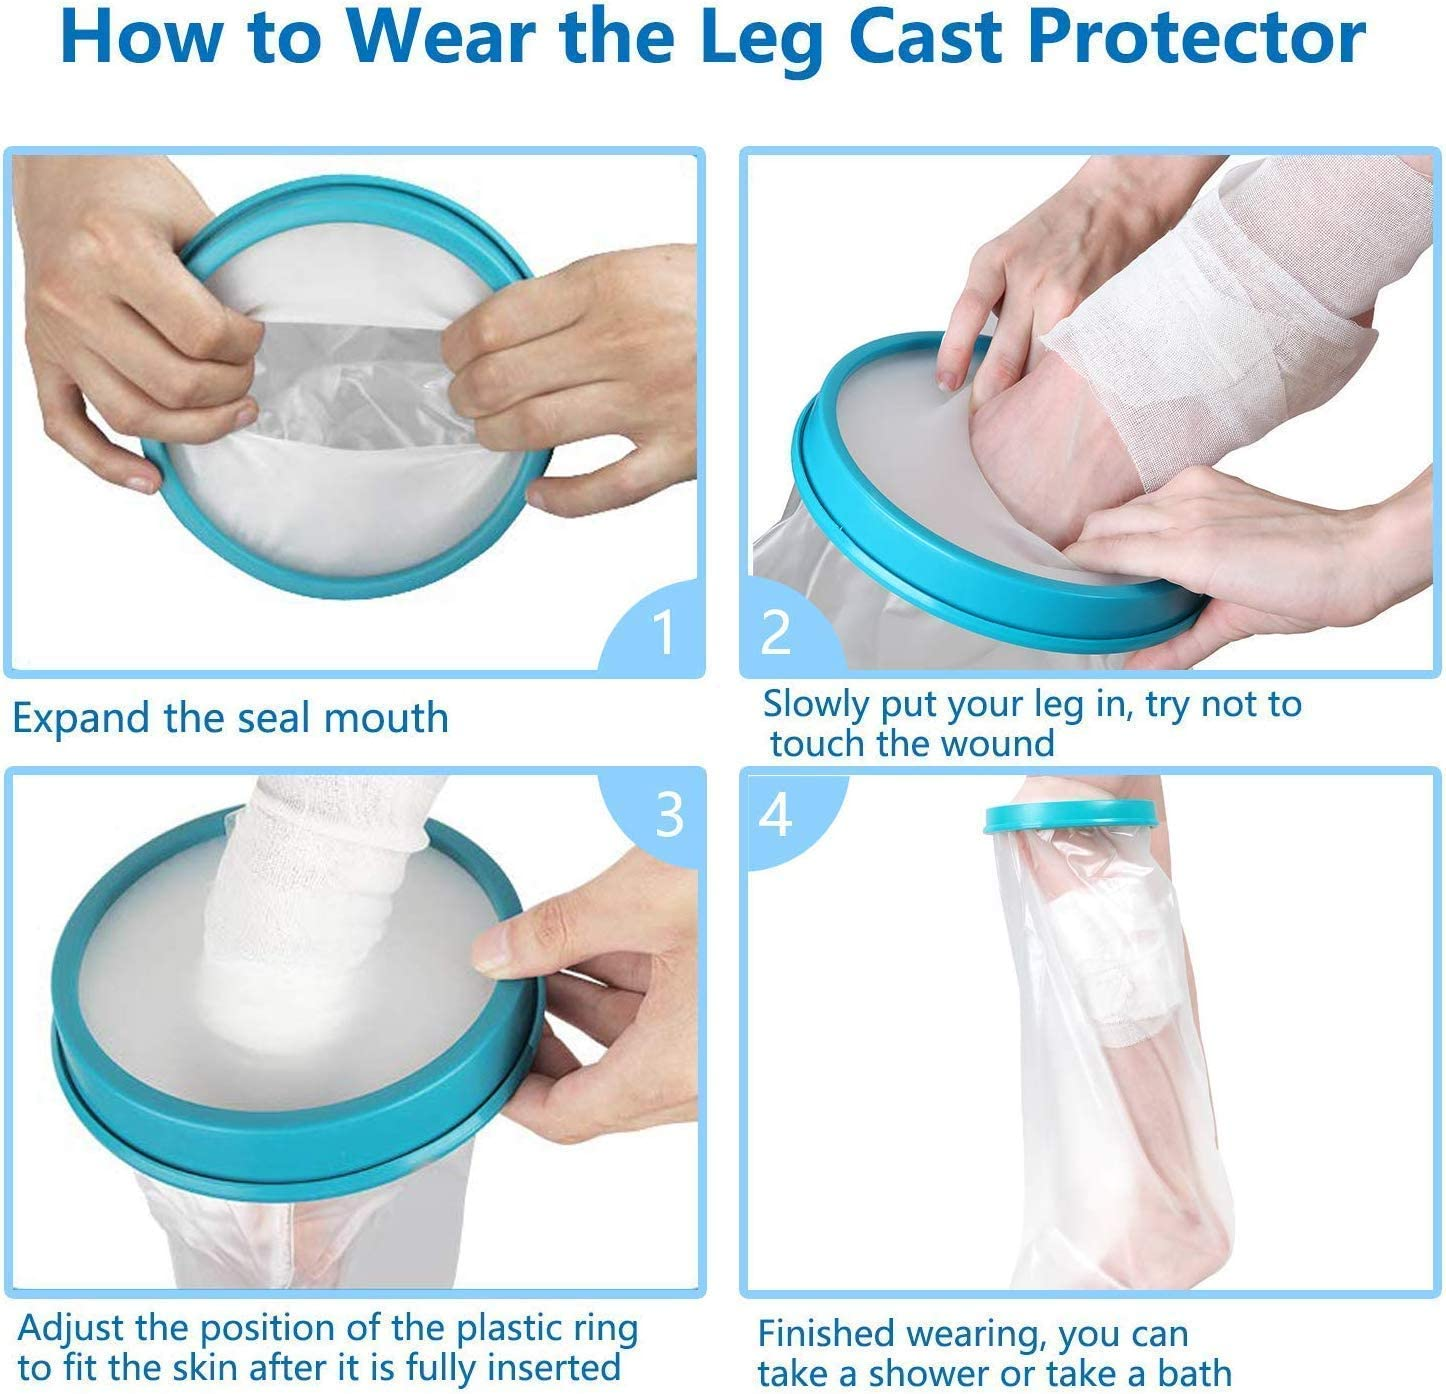 【2020 Upgraded】Waterproof Leg Cast Cover for Shower and Bath, Reusable Sealed Watertight Foot Protector to Keep Wound & Bandages Dry, Perfect Fit for Leg Foot Ankle and No Mark on Skin: Health & Personal Care